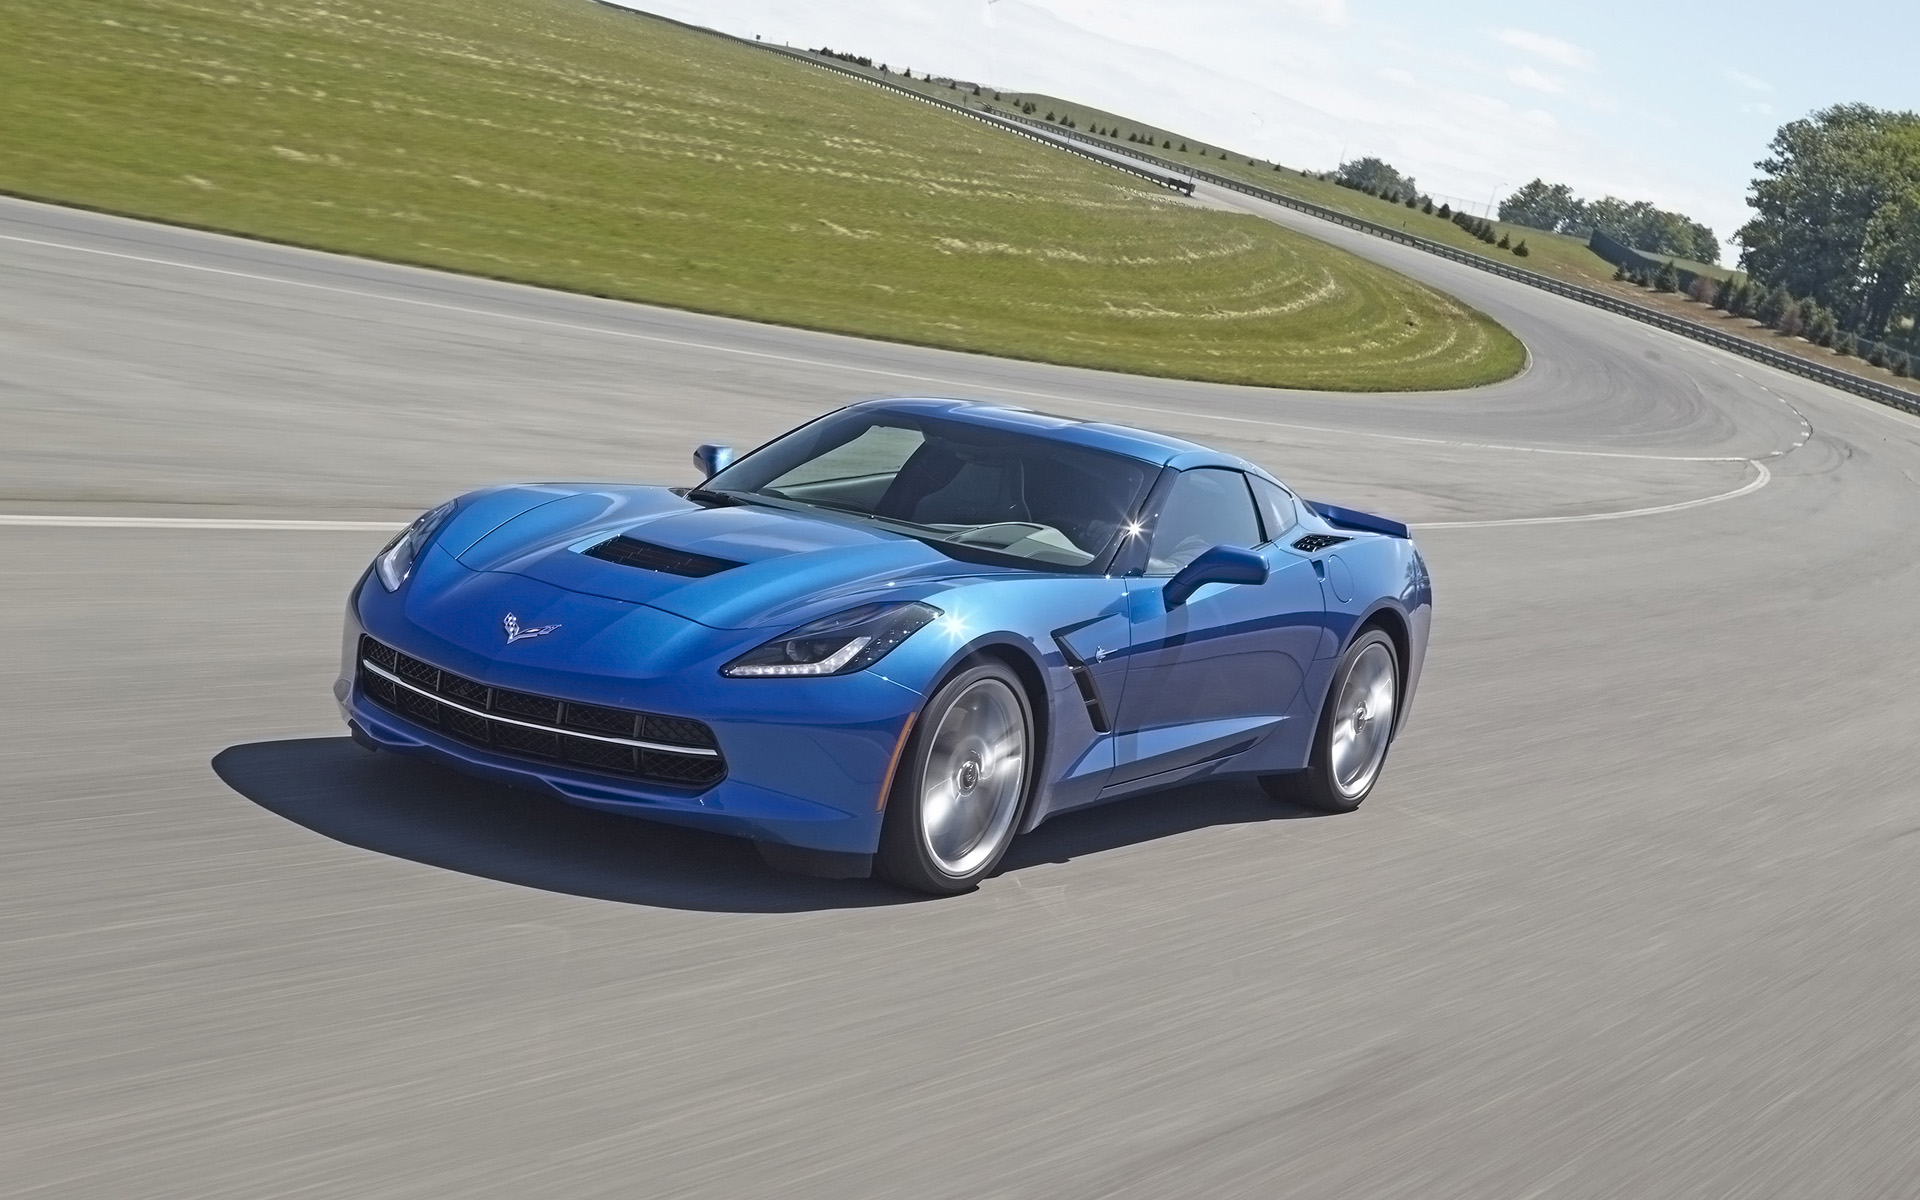 2014 Corvette Stingray Blue